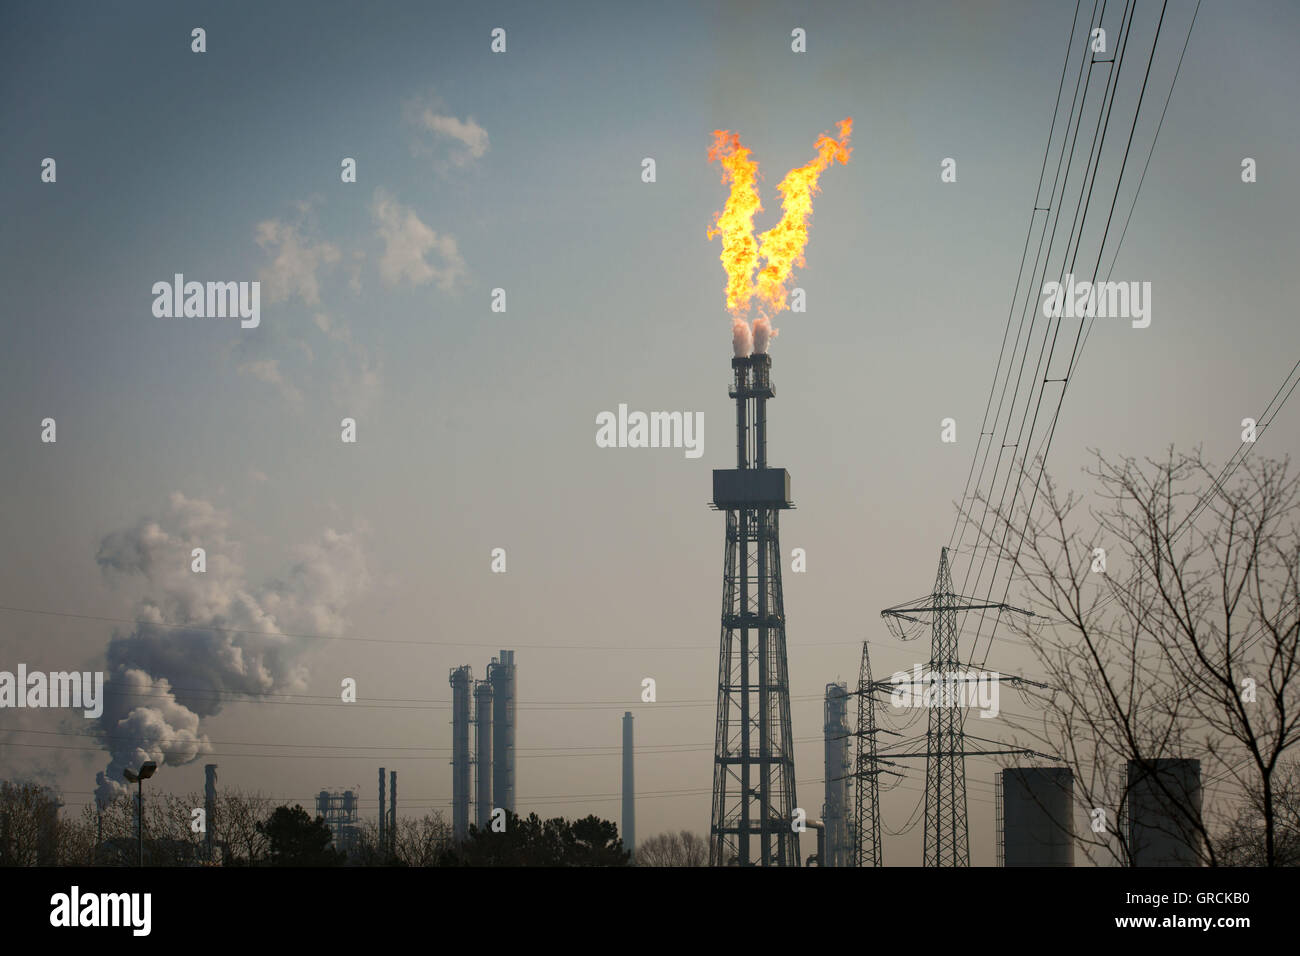 Industrial Gas Flaring, Accident, Wesseling, Nrw - Stock Image